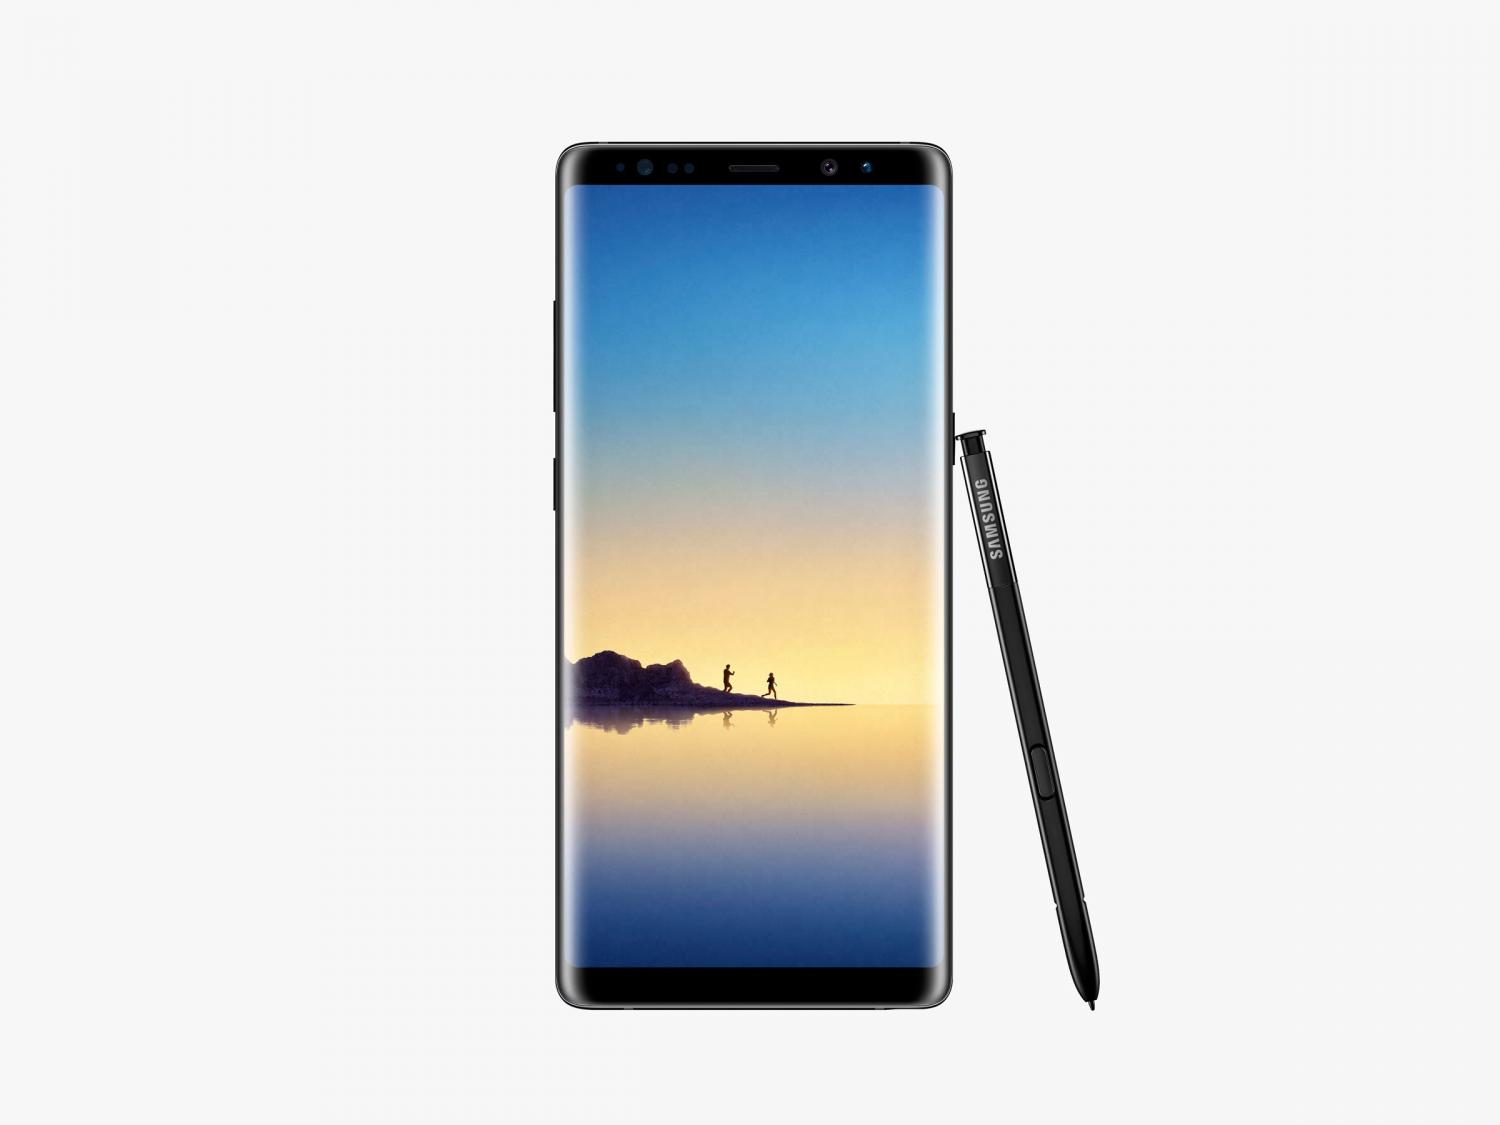 Award winning artist launches Samsung Galaxy Note 8